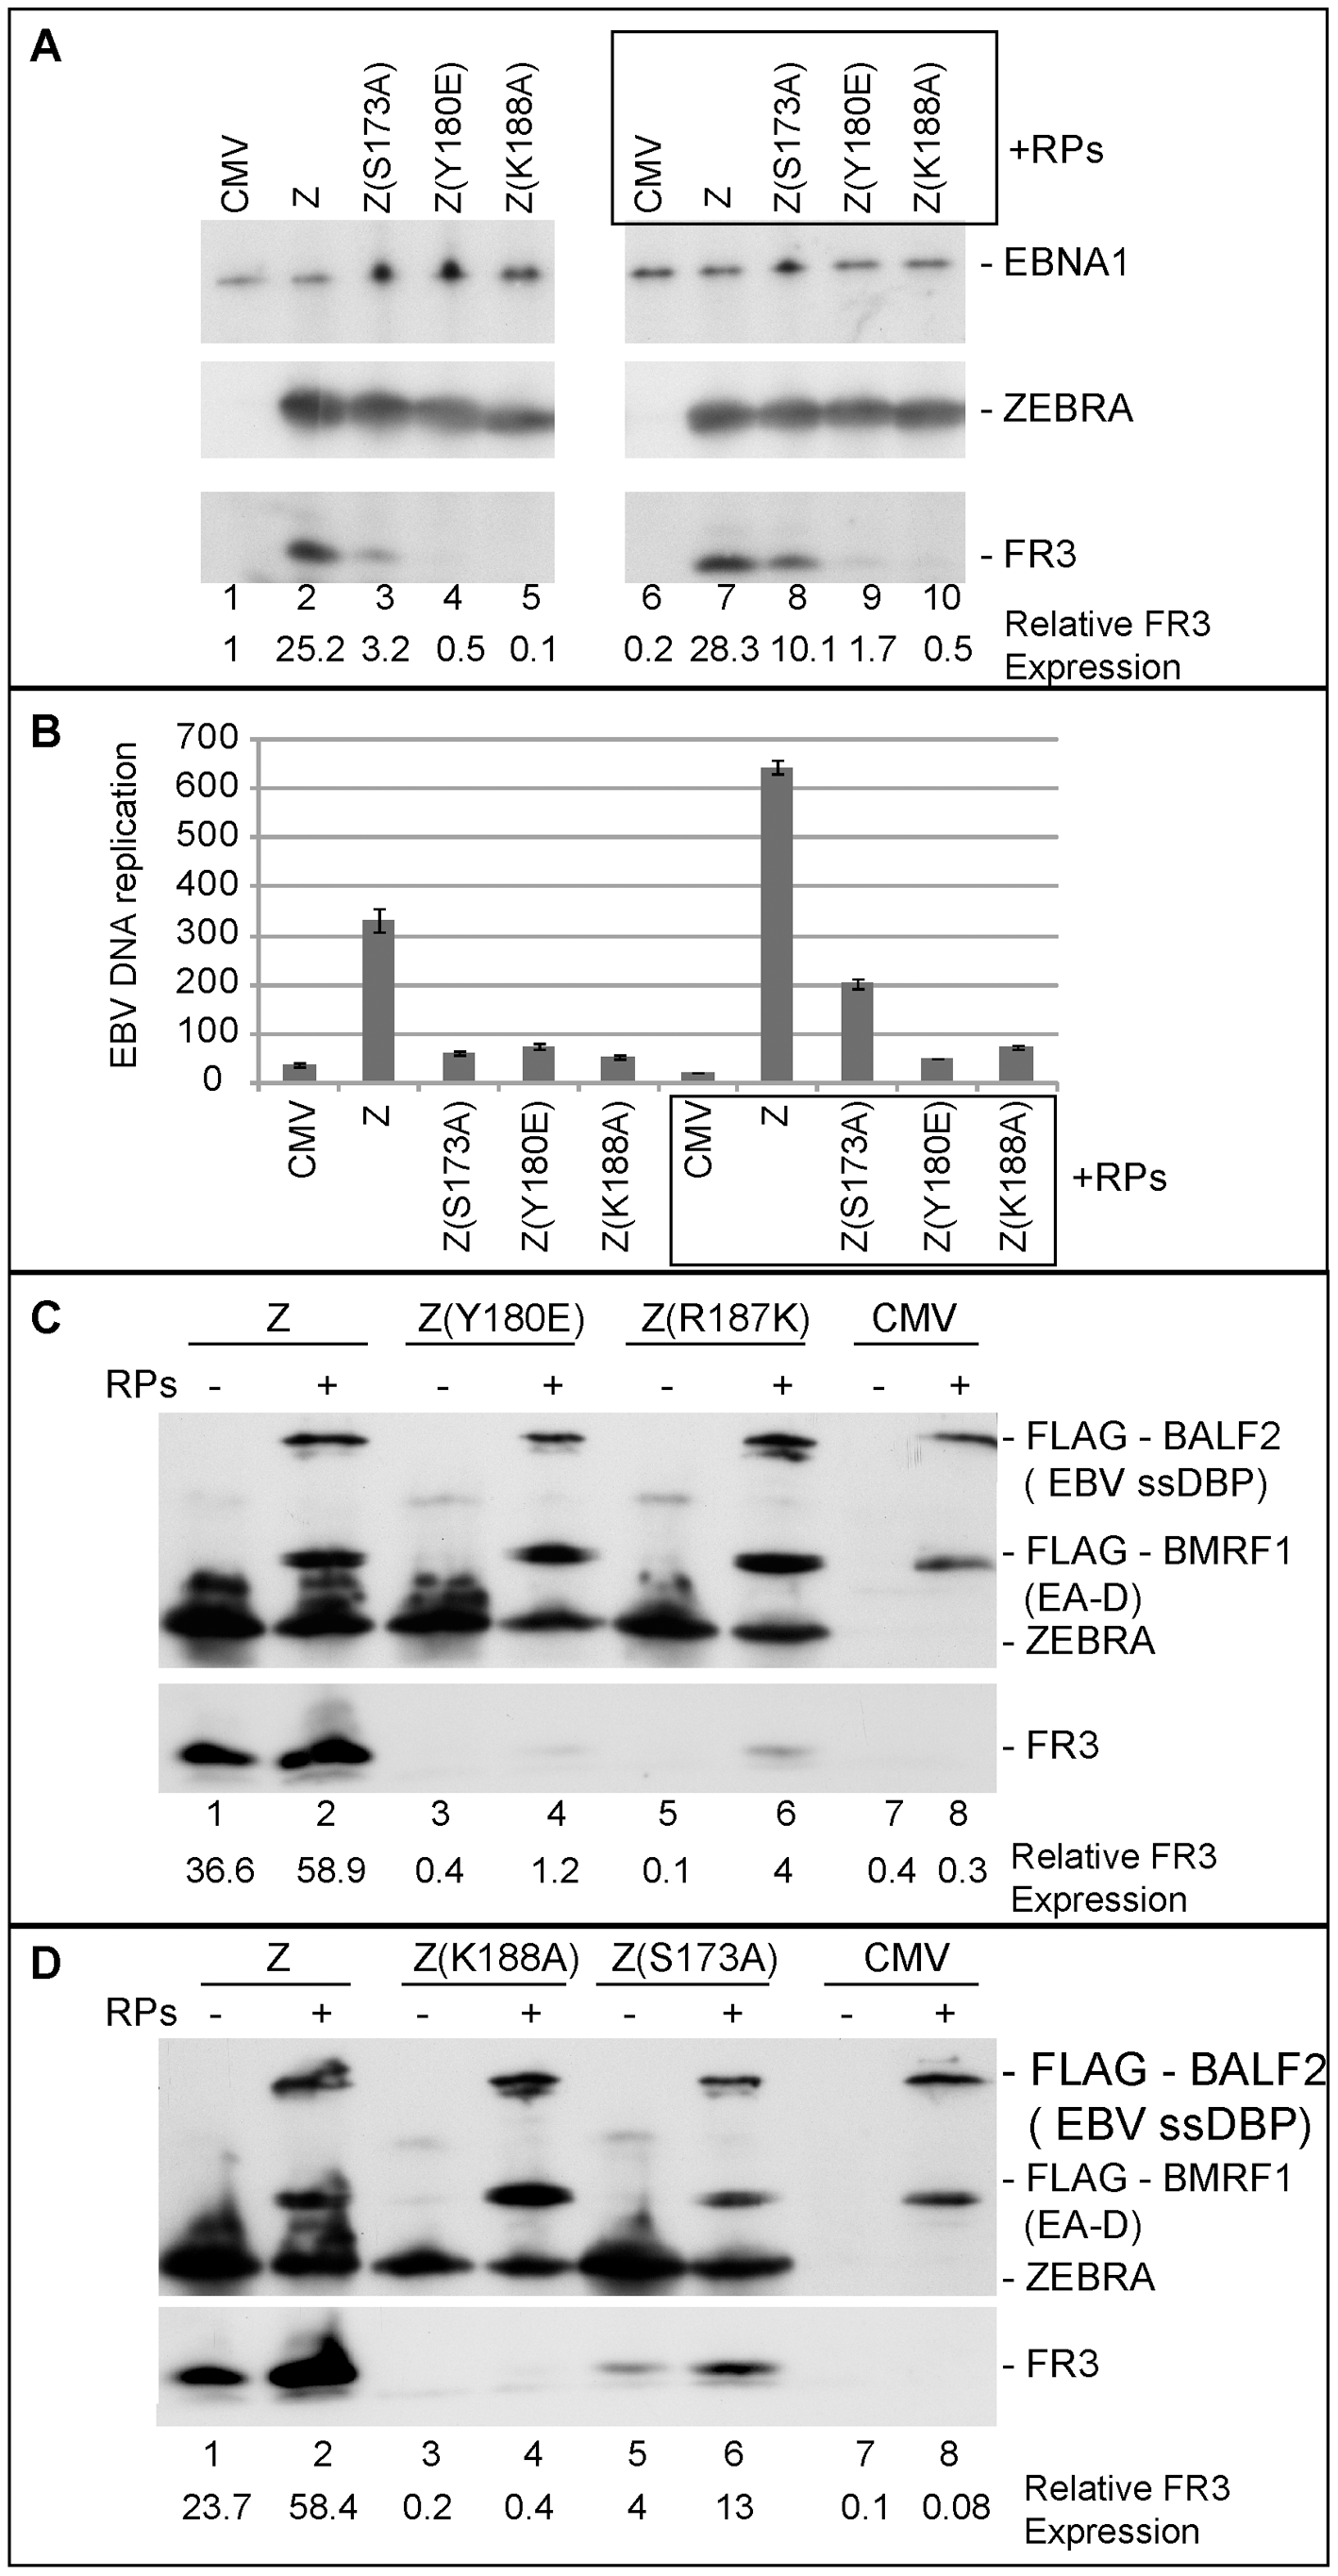 Over-expression of EBV replication proteins partially suppresses the phenotype of Z(S173A) and Z(R187K).